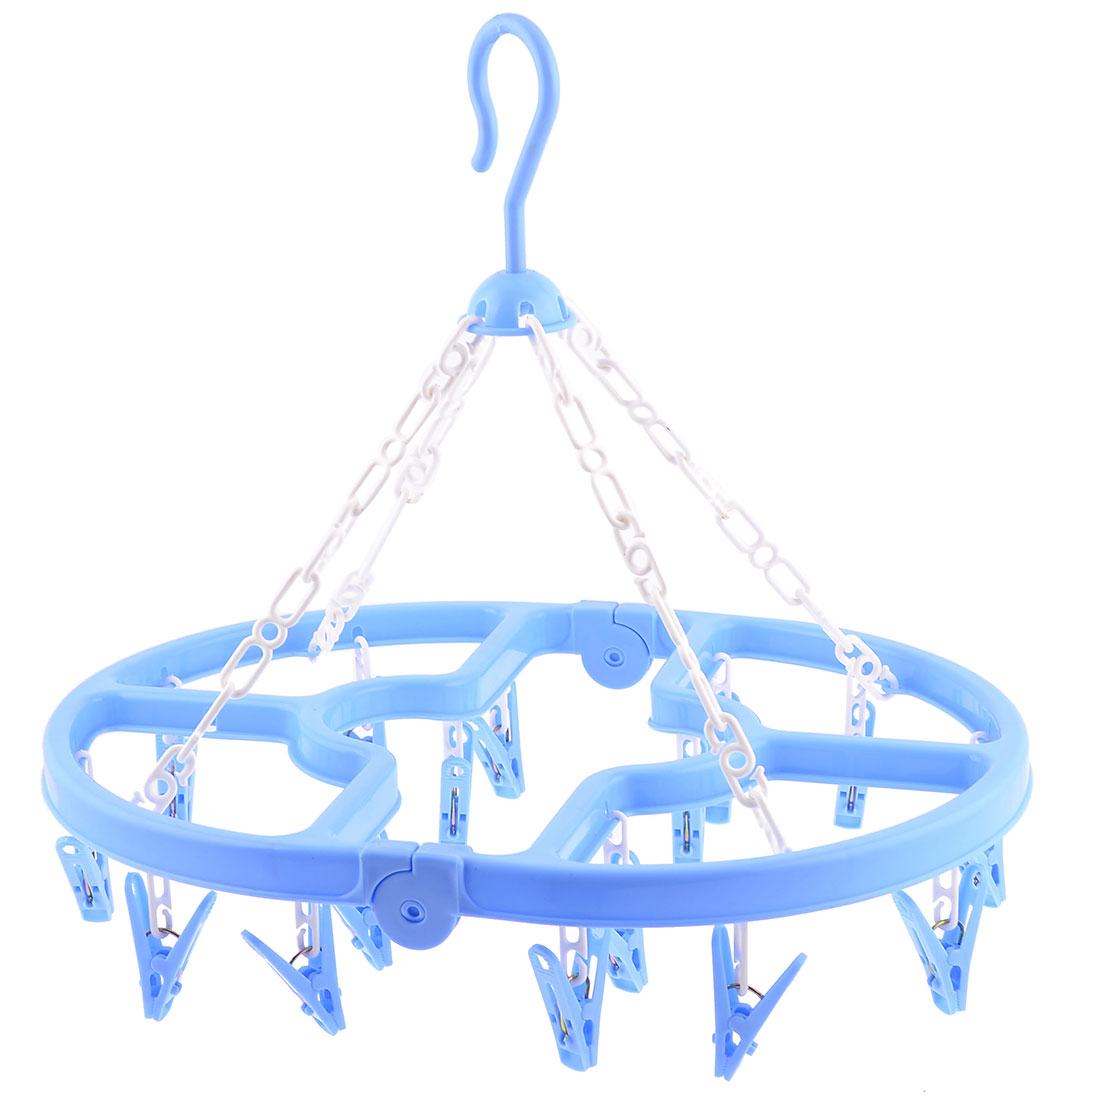 Household Folding Blue Plastic 16 Pegs Oval Frame Airing Clips Clamps Hanger